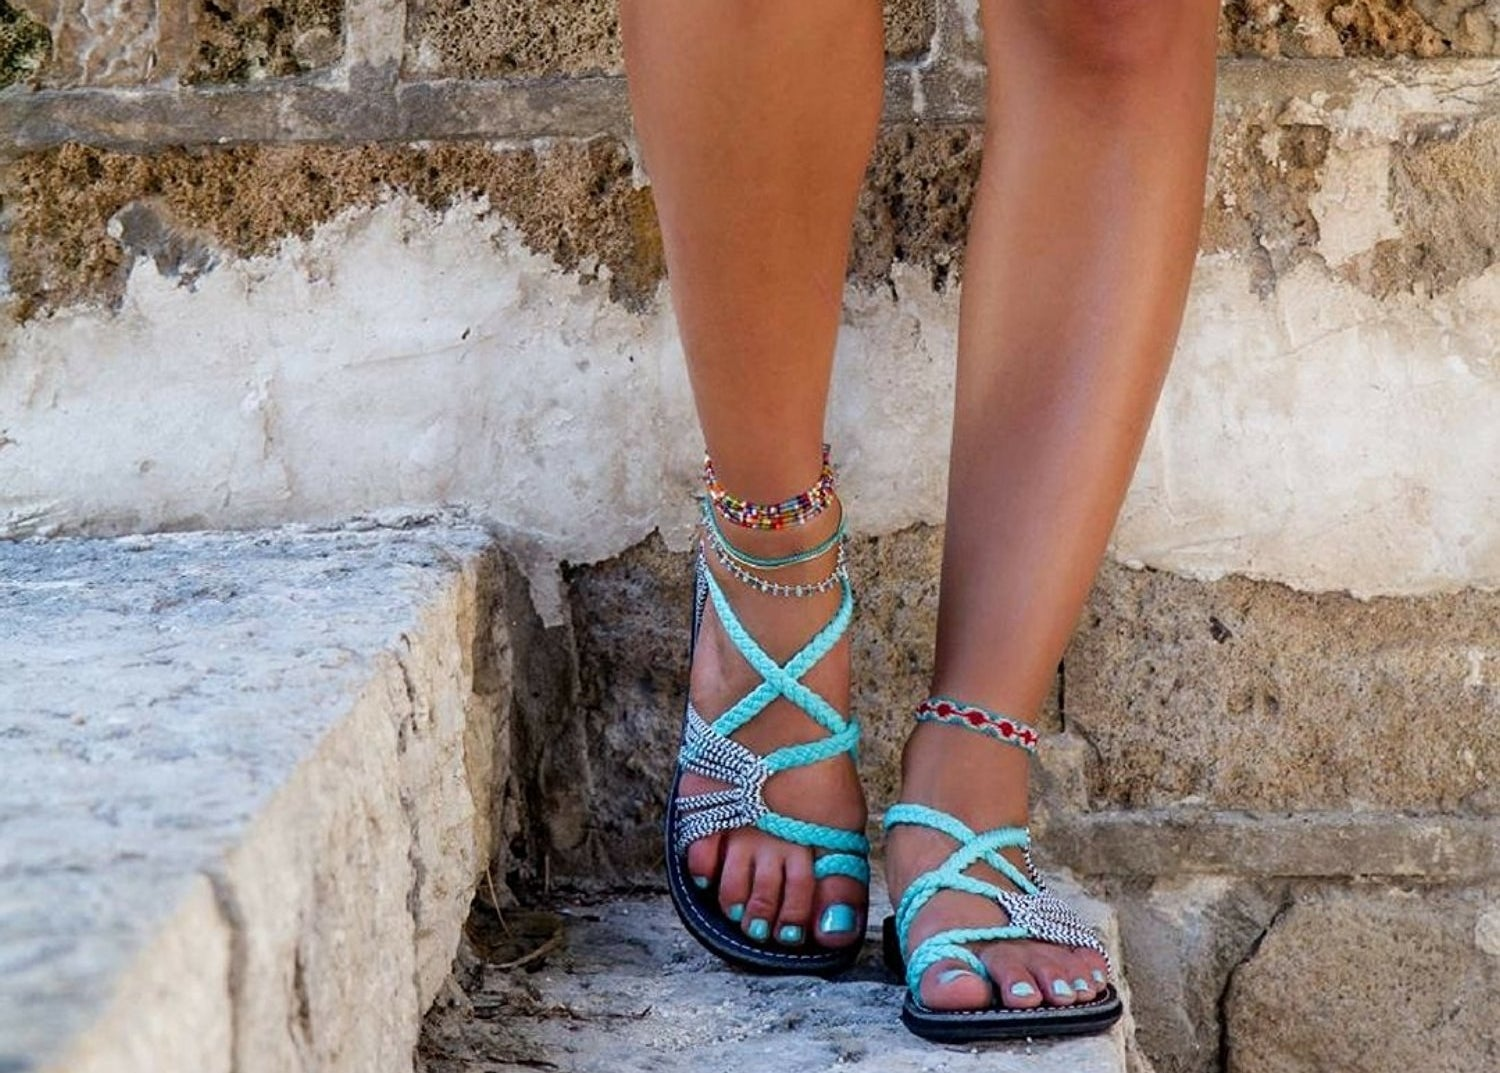 A model wearing the Plaka Sandals in Turquoise-zebra